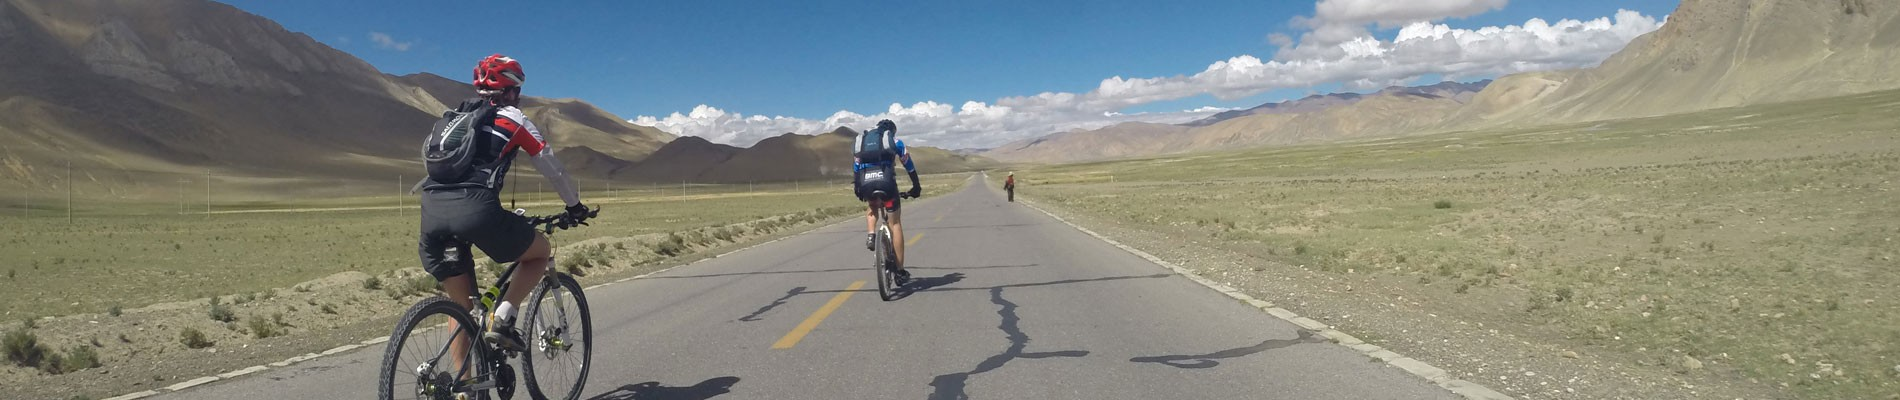 Tibet: 24d Mountain Biking Friendship Highway in Tibet